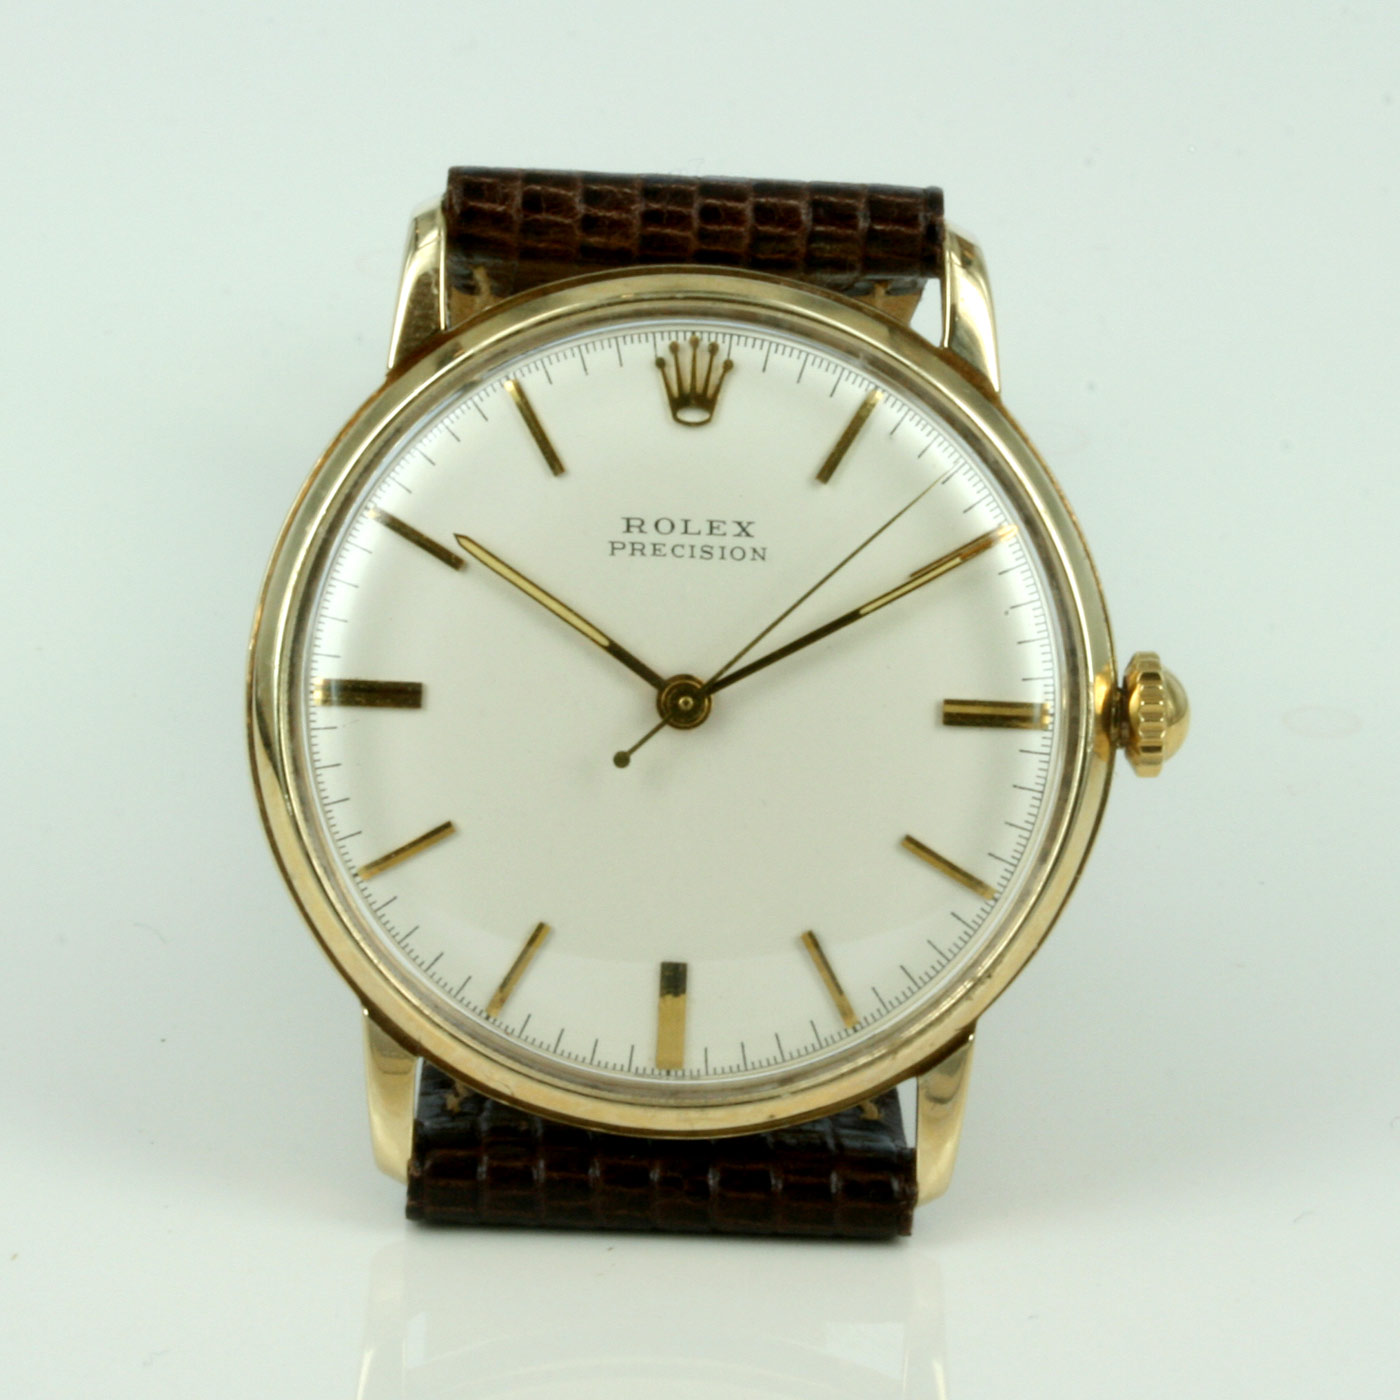 7bb9001e4aa Buy Vintage Rolex Presion watch in gold. Sold Items